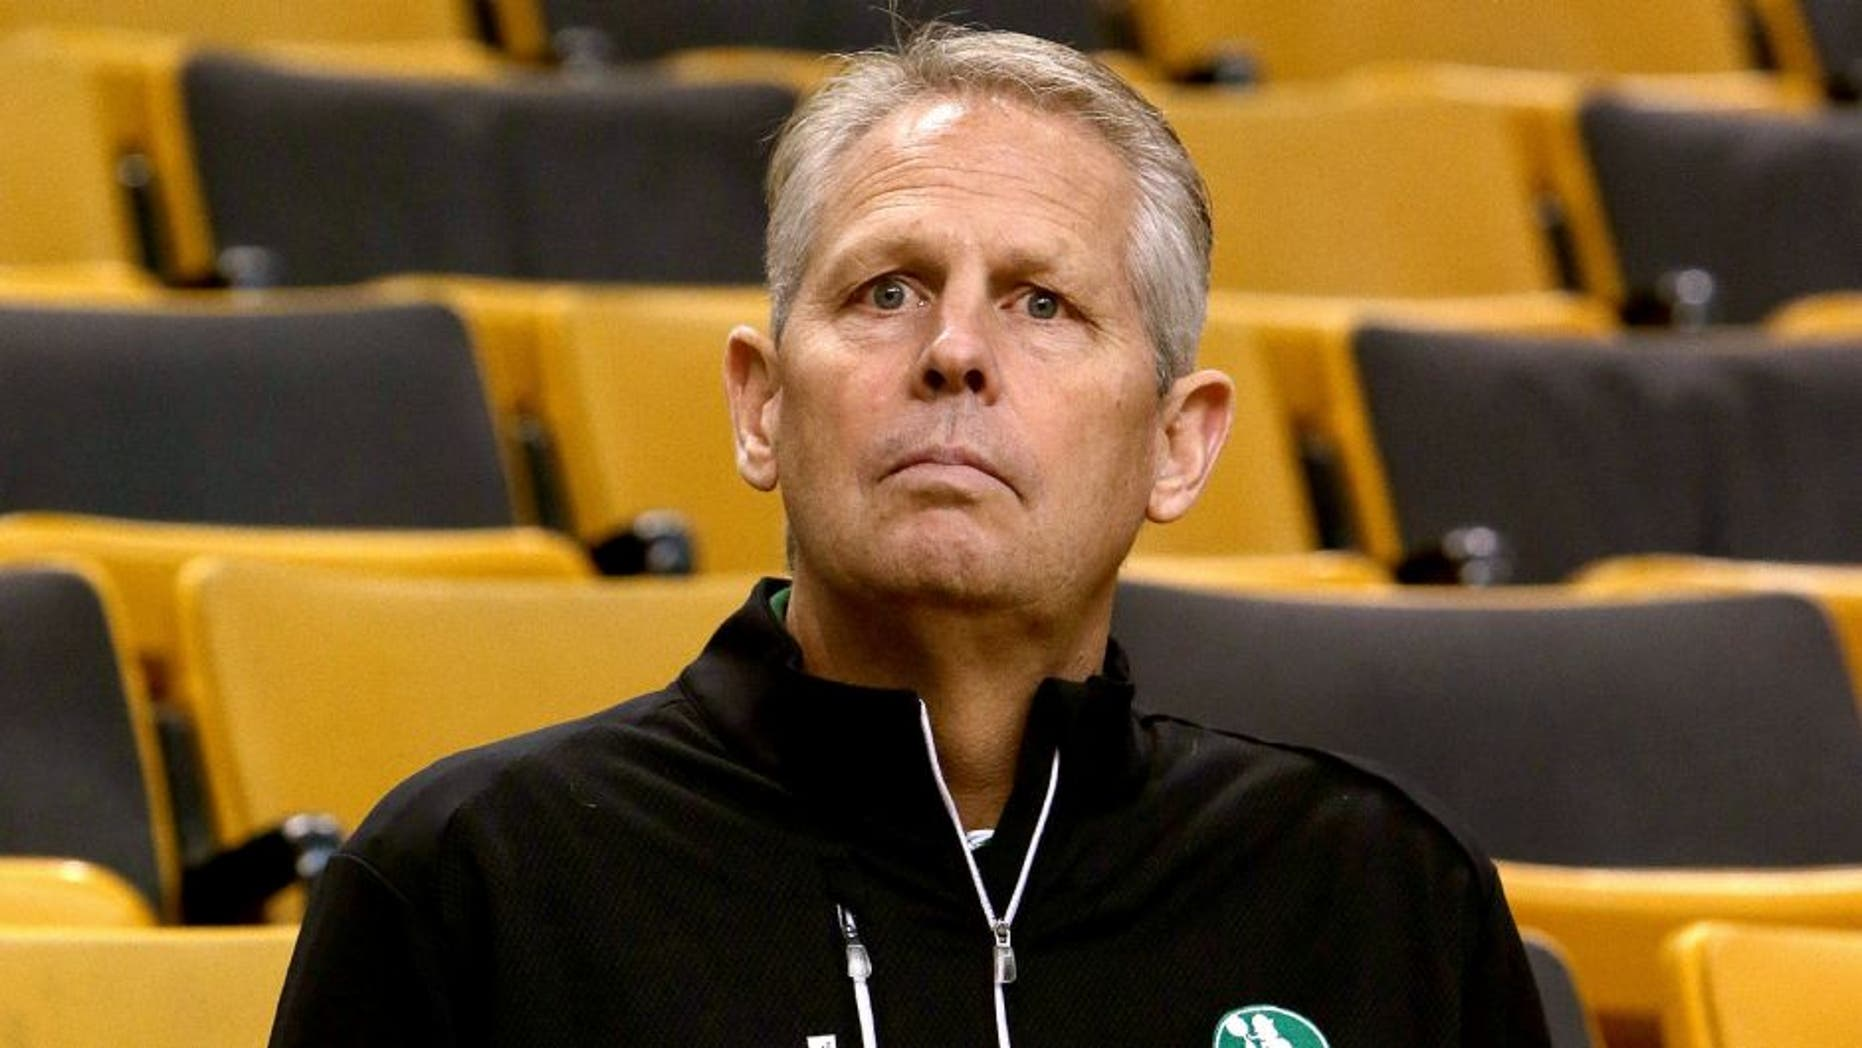 BOSTON - OCTOBER 22: Boston Celtics President of Basketball Operations Danny Ainge in Red Auerbach's old seat. The Boston Celtics take on the Brooklyn Nets in a preseason exhibition game at TD Garden. (Photo by Barry Chin/The Boston Globe via Getty Images)